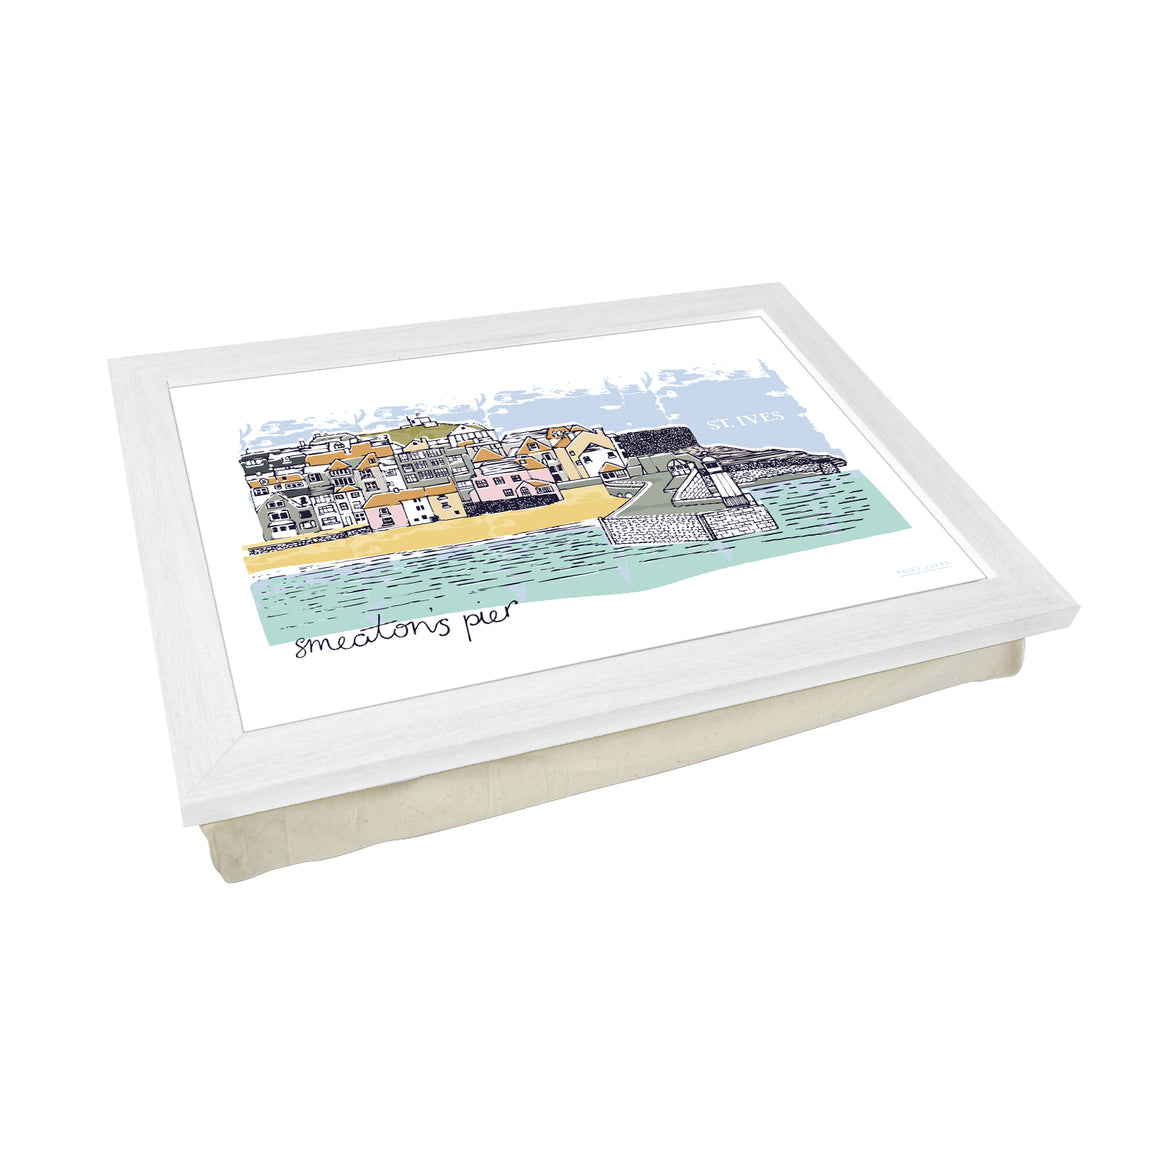 St Ives Smeaton's Pier Lap Tray by Vicky Yorke Designs